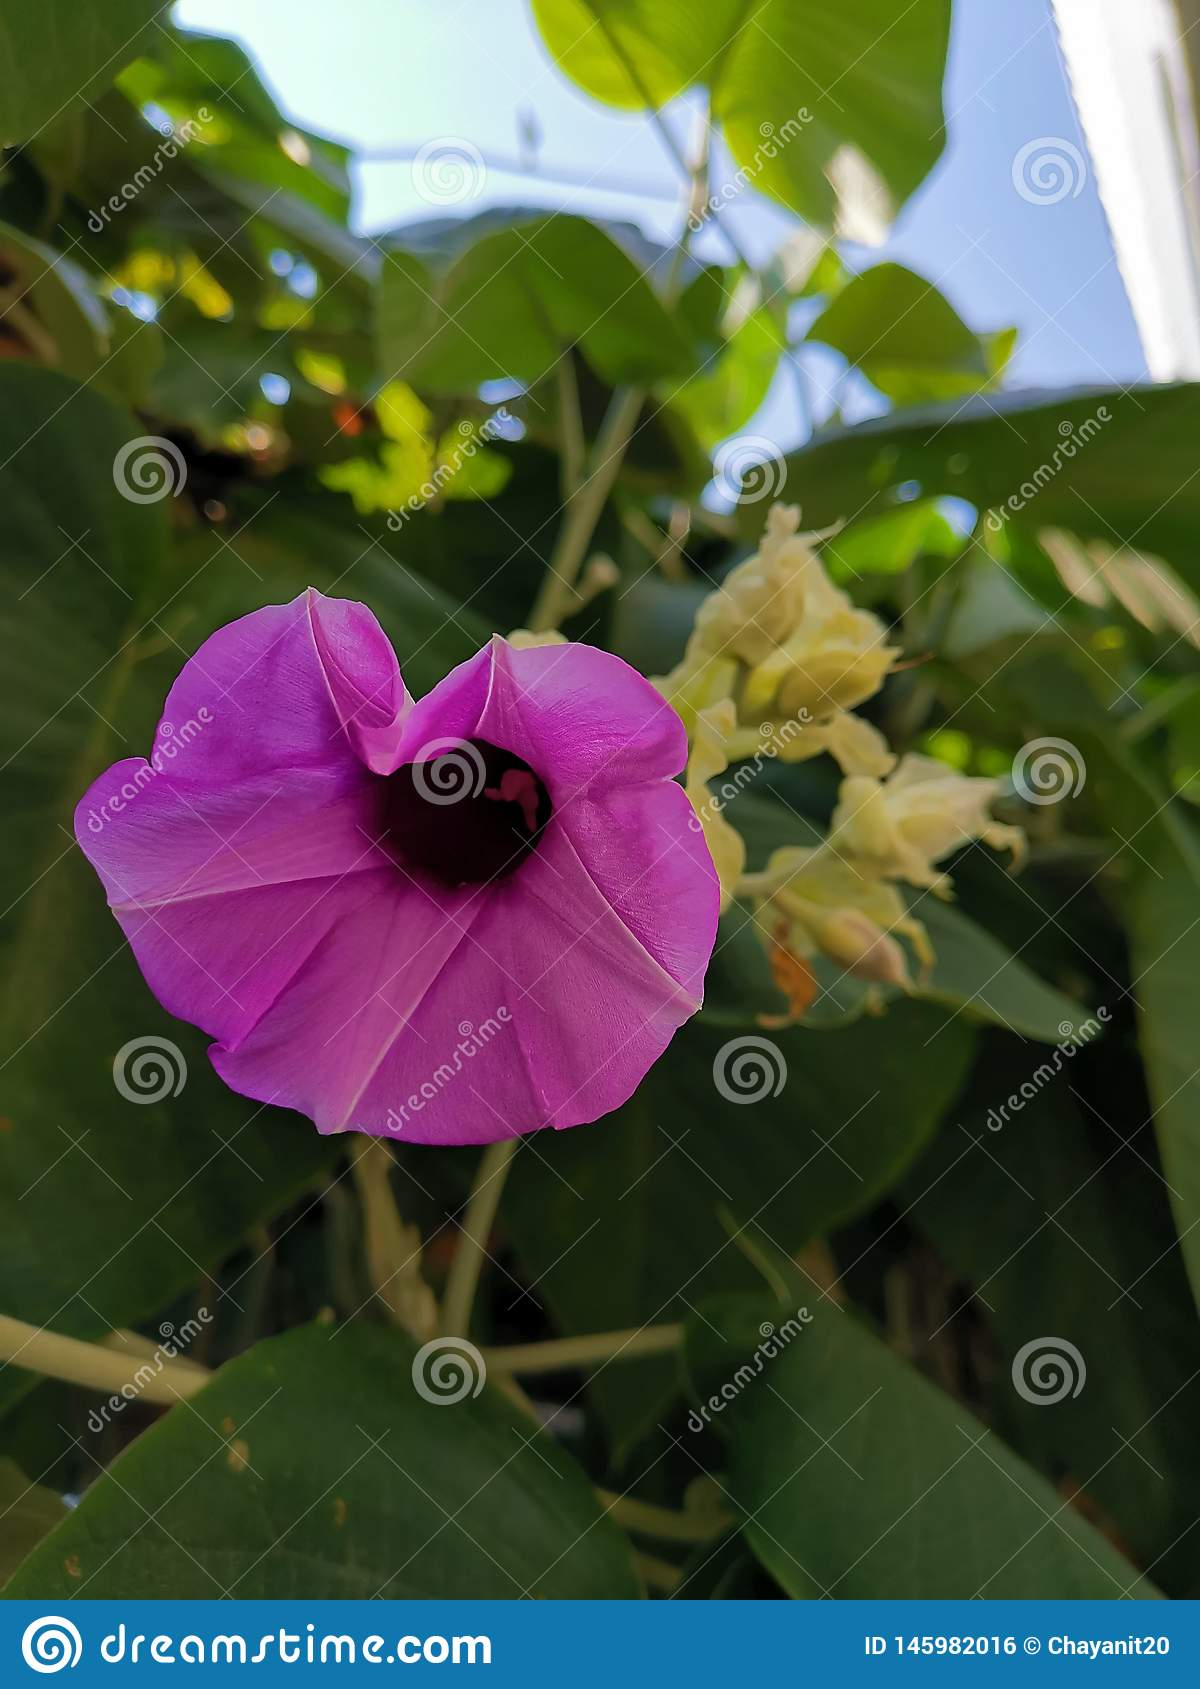 Hello Saturday with this lovely purple Elephant creeper flower